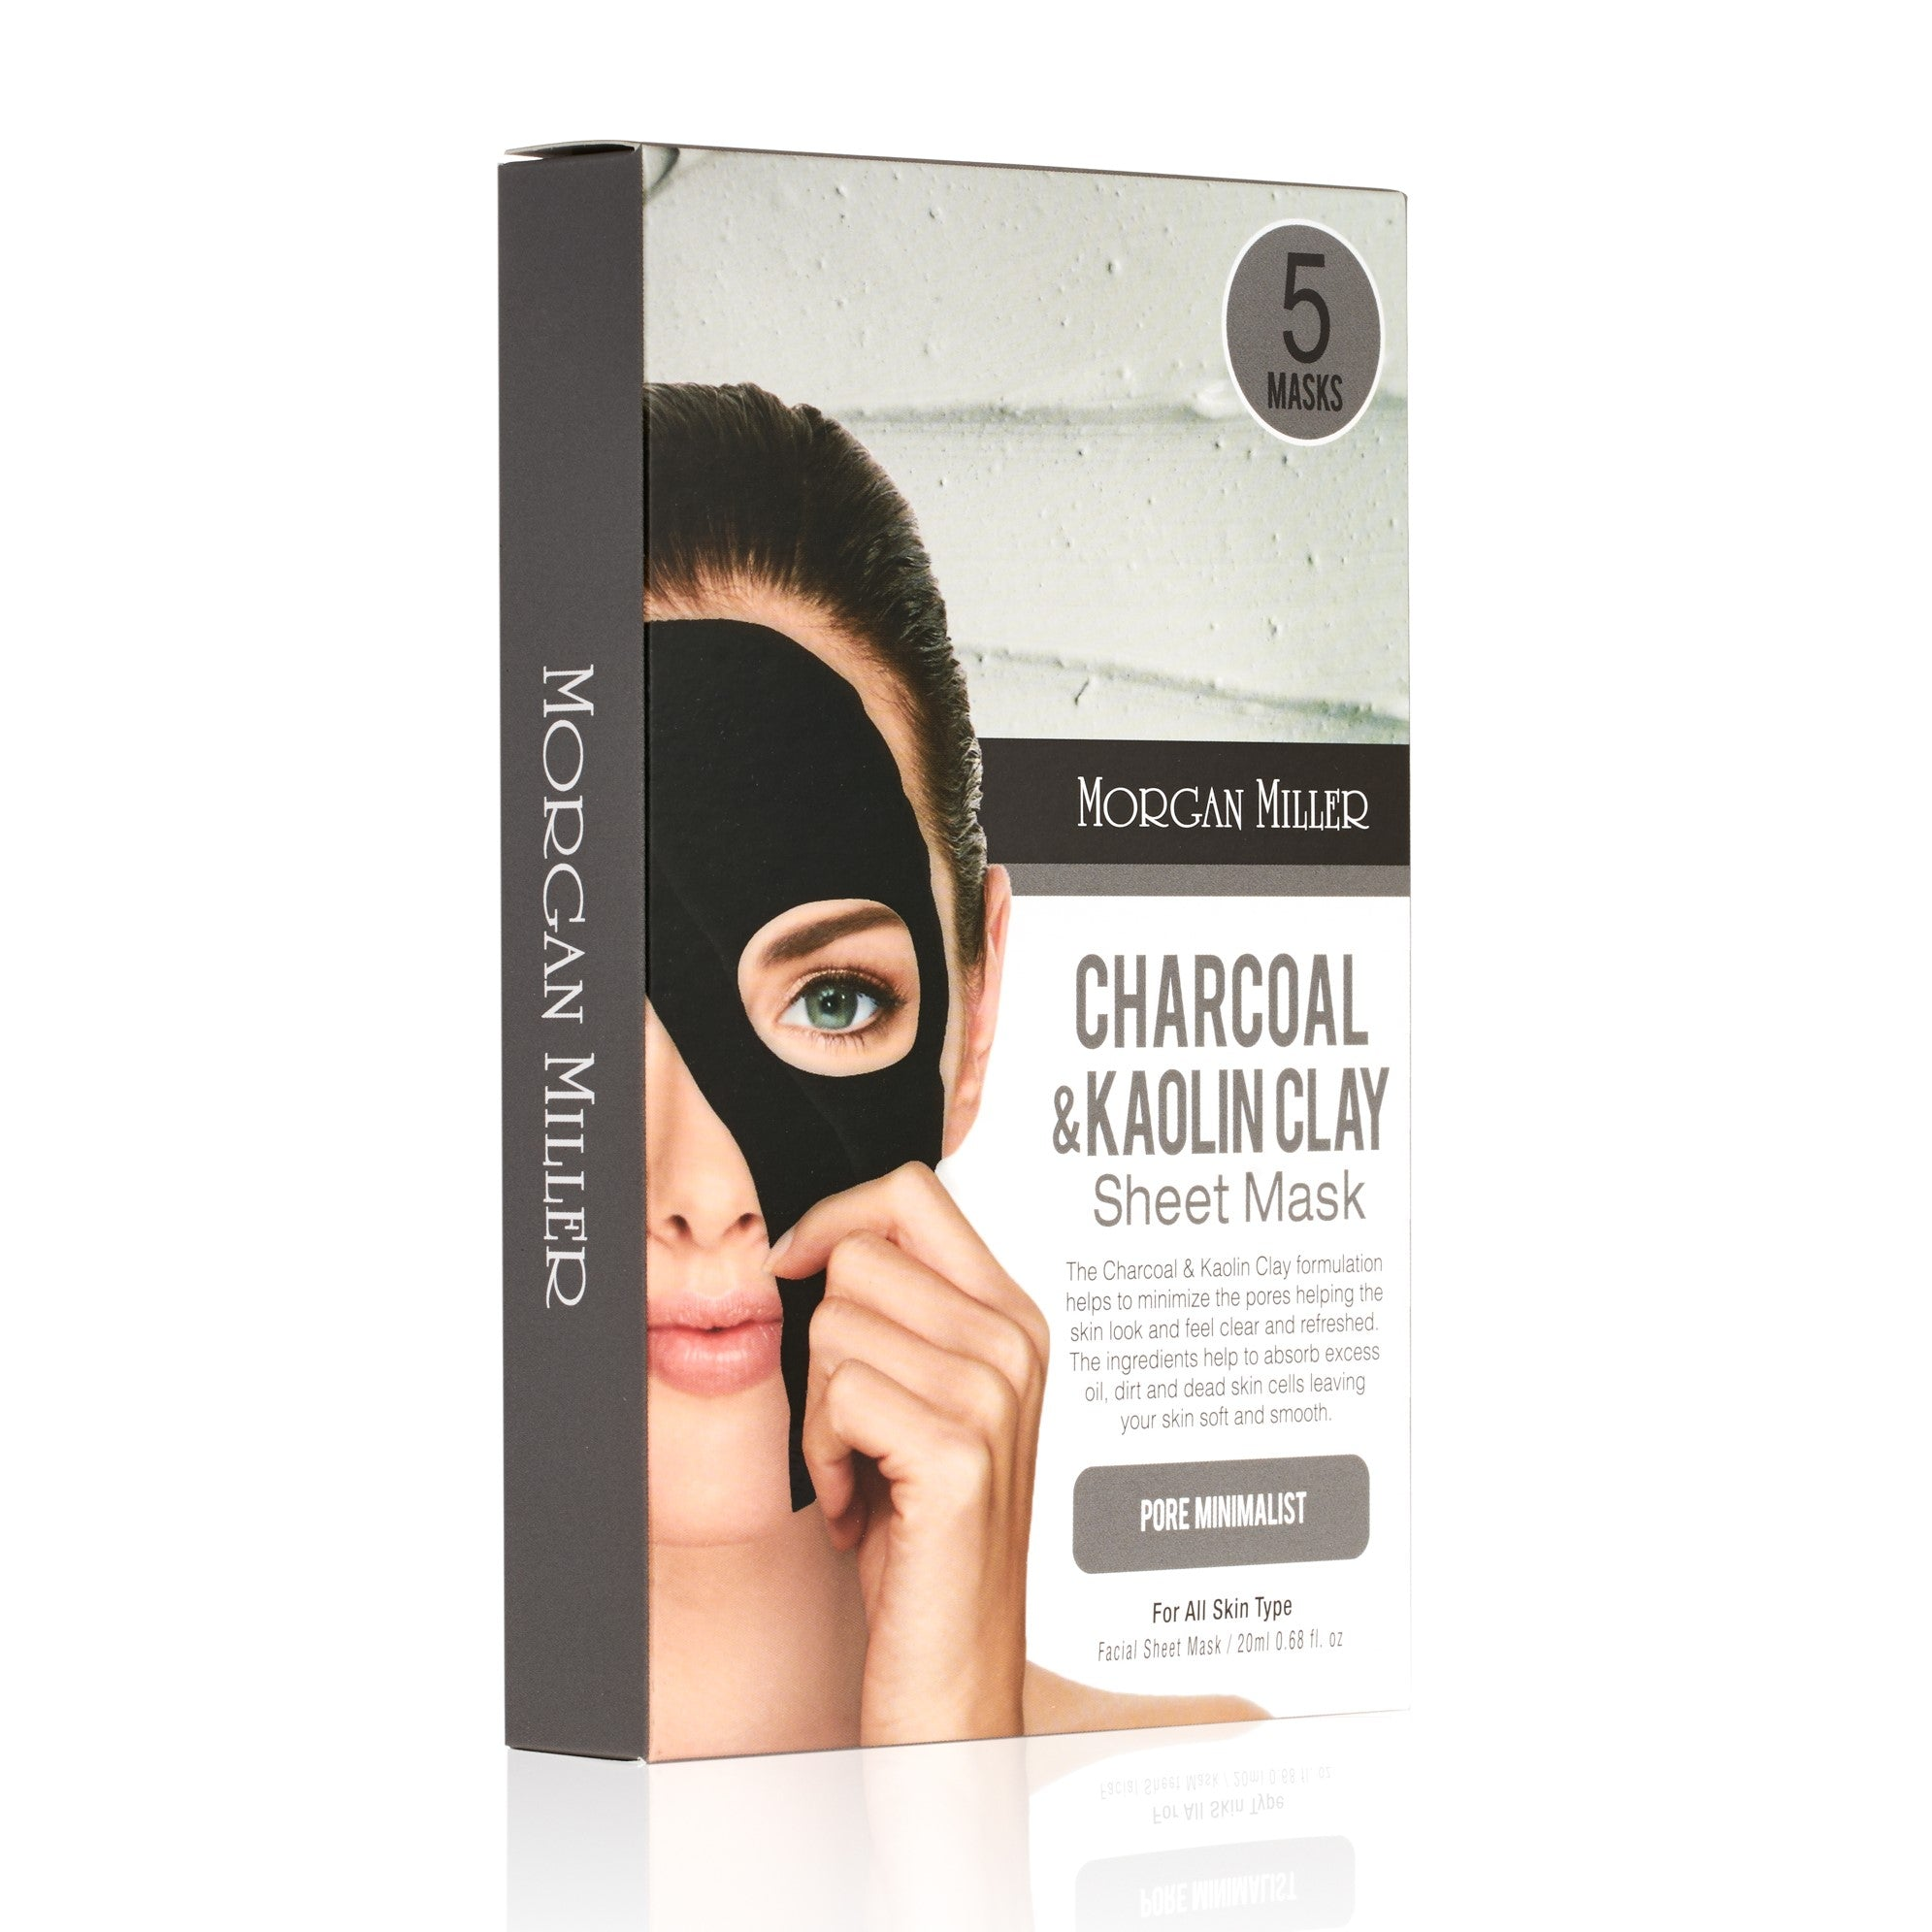 Morgan Miller Charcoal & Kaolin Clay Sheet Masks packaging